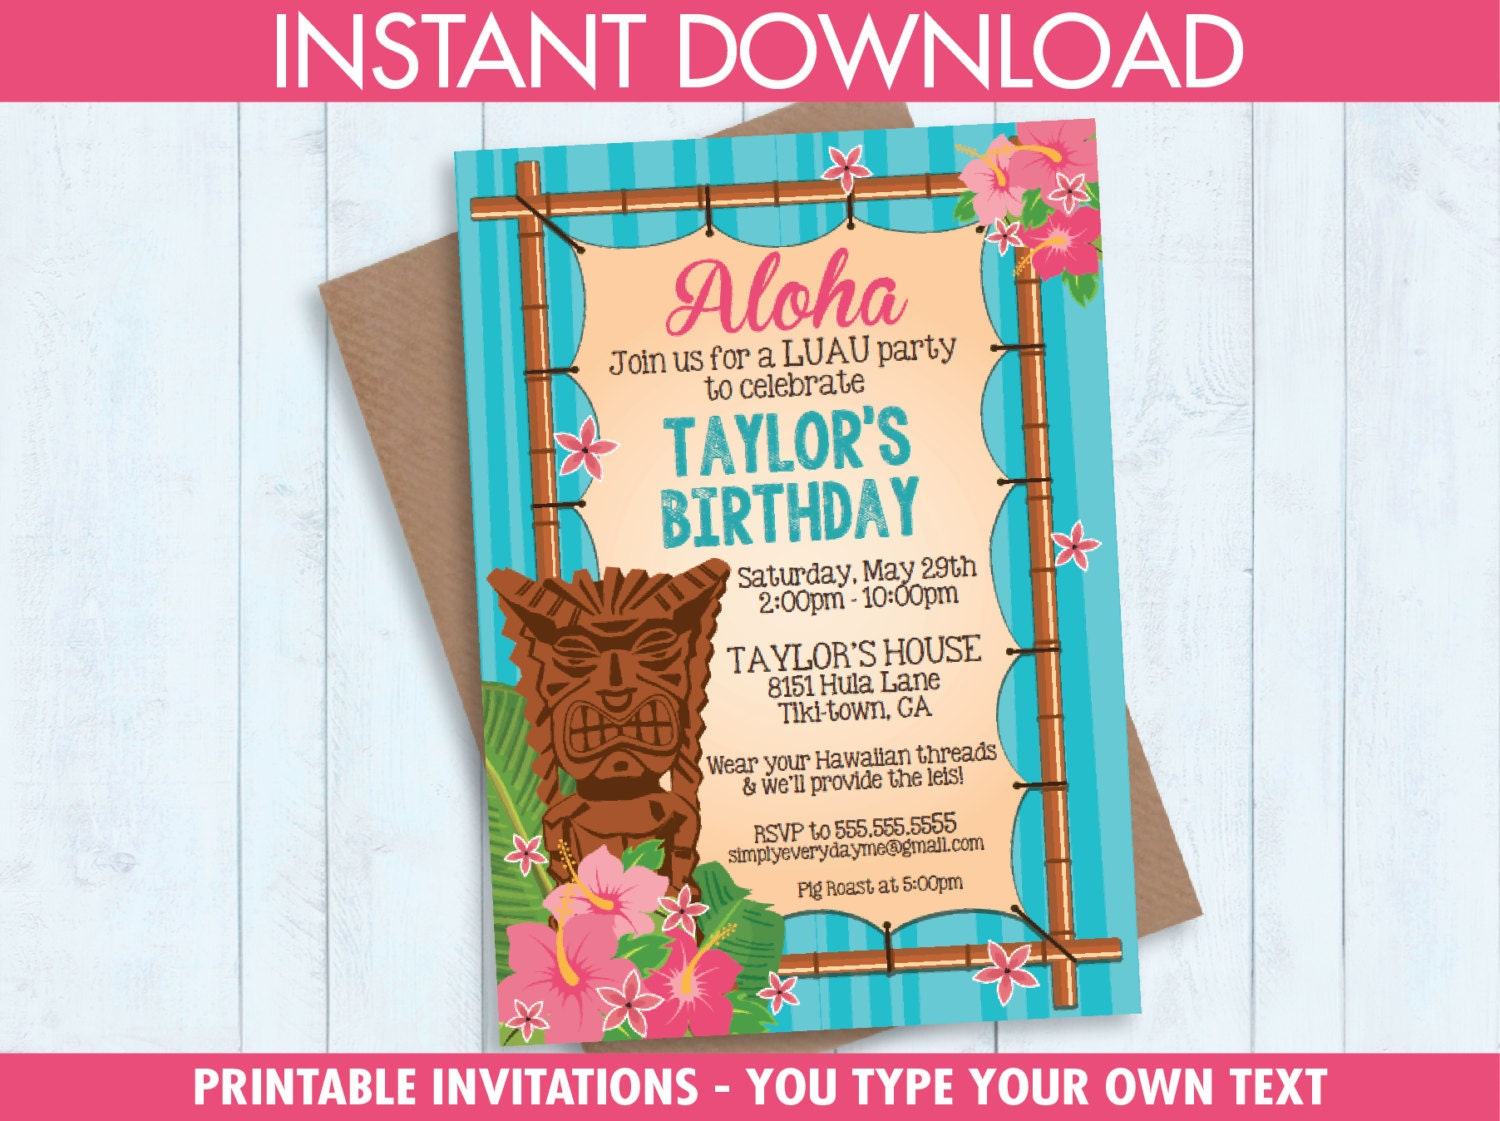 Luau invitations hawaiian party editable birthday party pdf to personalize at home for Instant download invitations